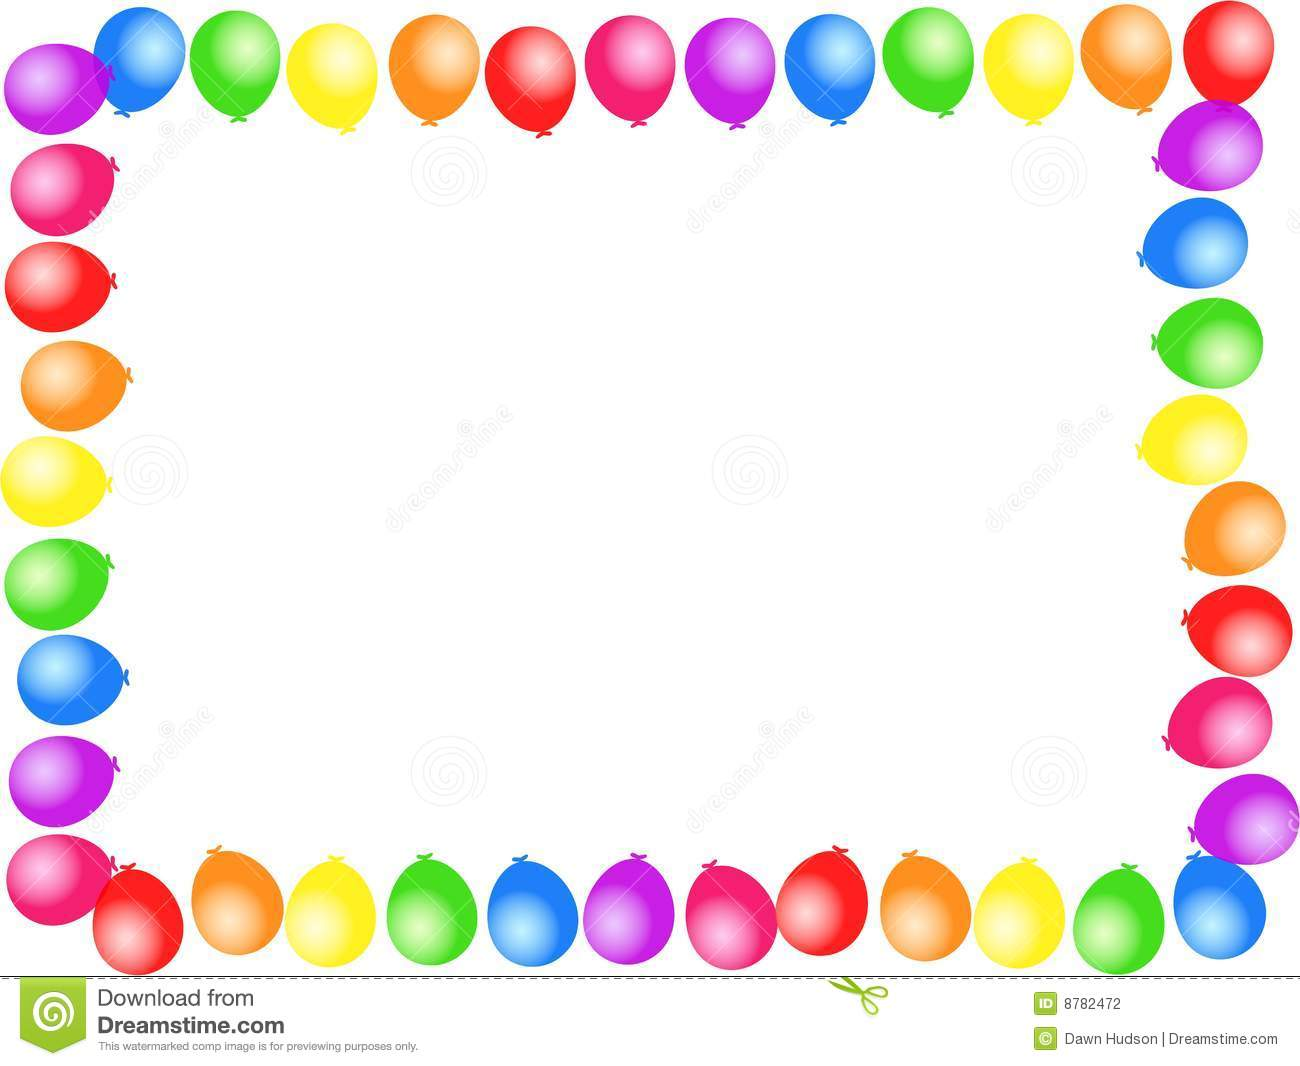 Free Party Frame Cliparts, Download Free Clip Art, Free ...  |Celebration Border Clipart